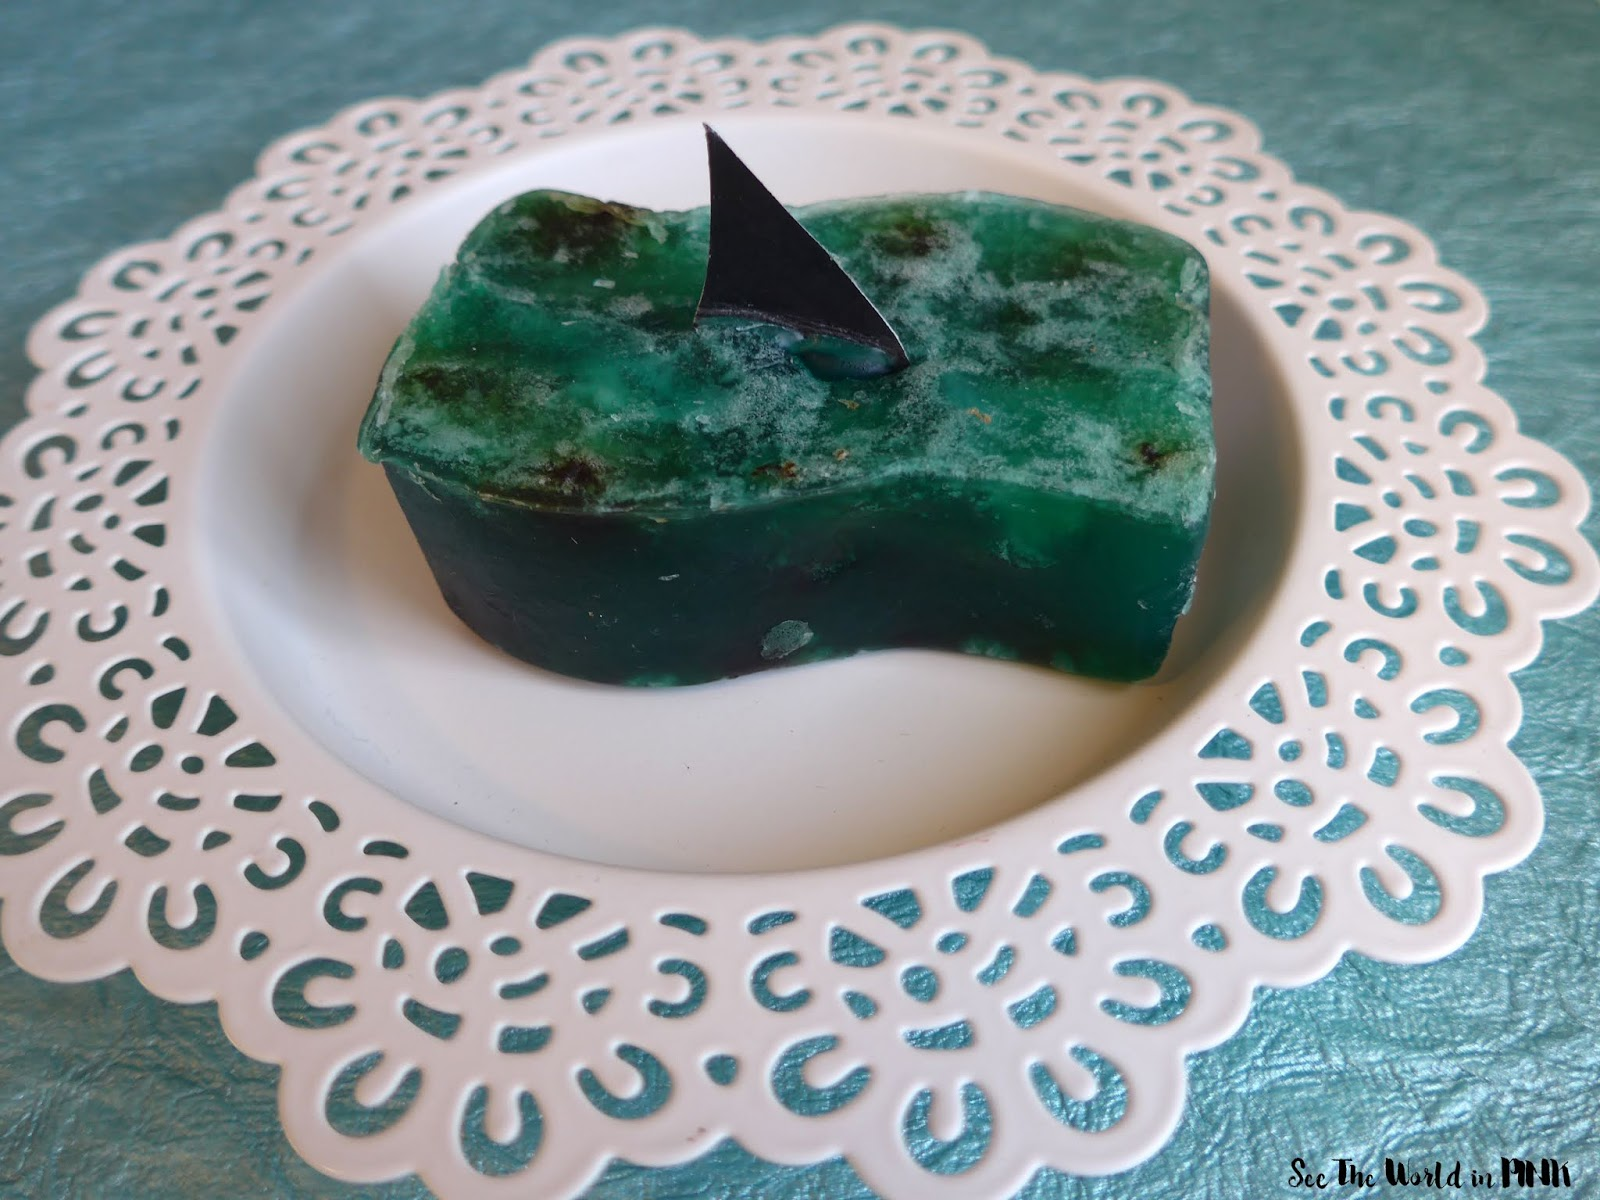 Shark Week - Lush's Shark Fin Soap and Working To #SaveSharks